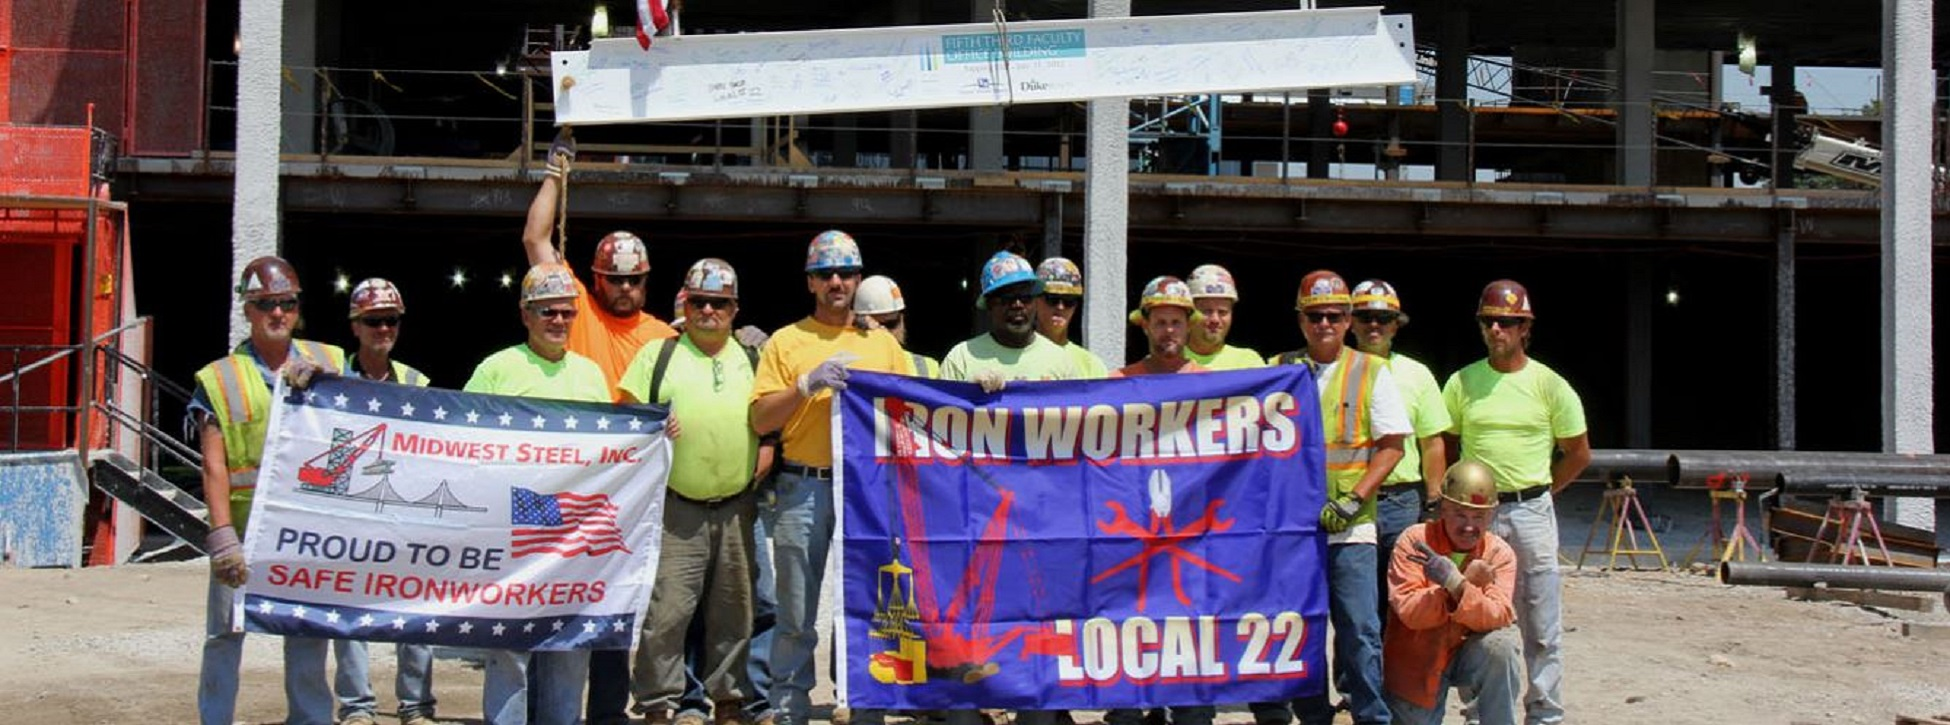 Ironworkers Local Union 22